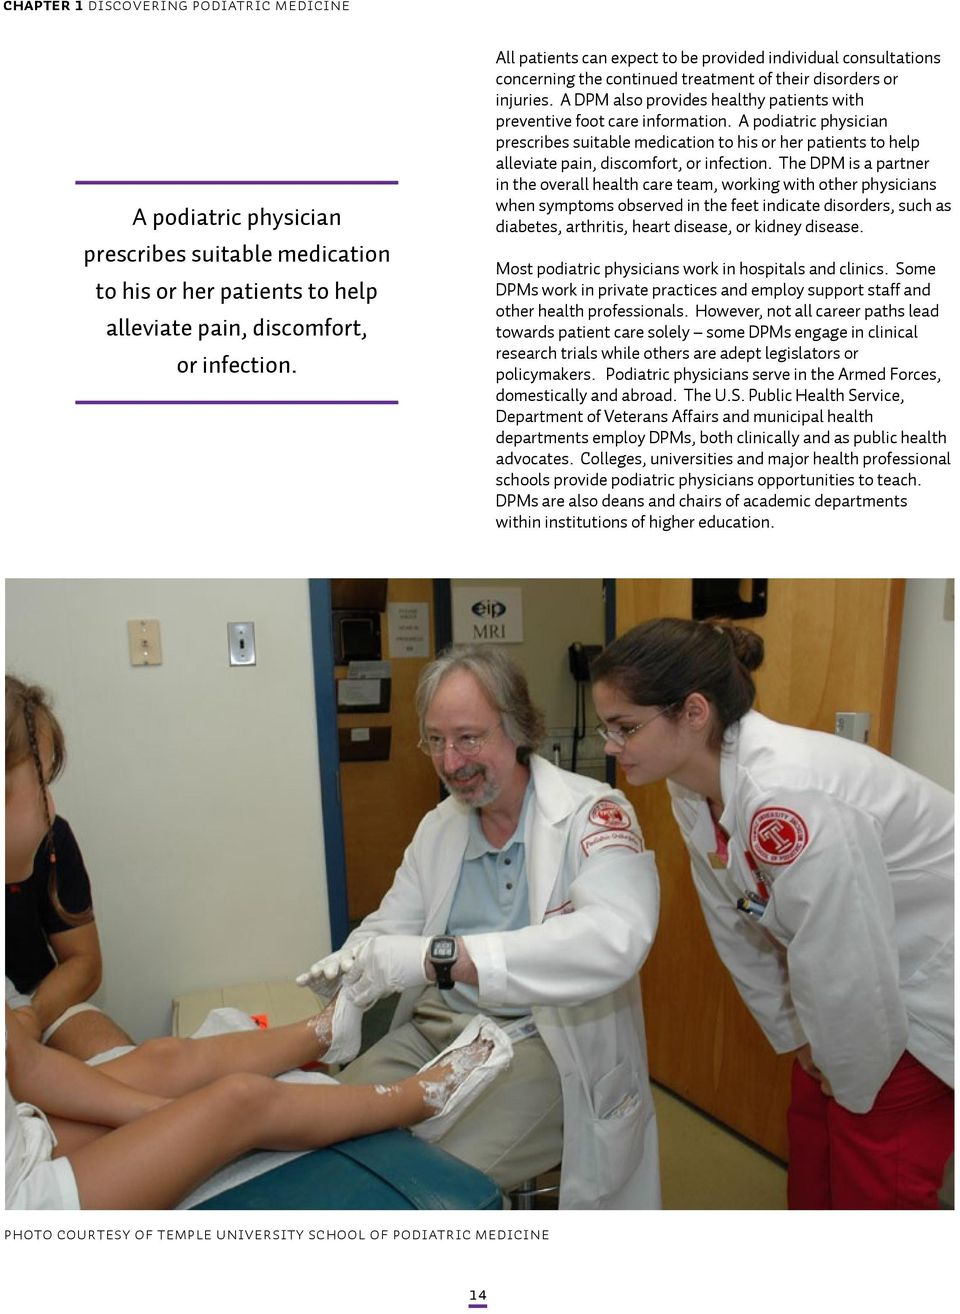 A DPM also provides healthy patients with preventive foot care information.